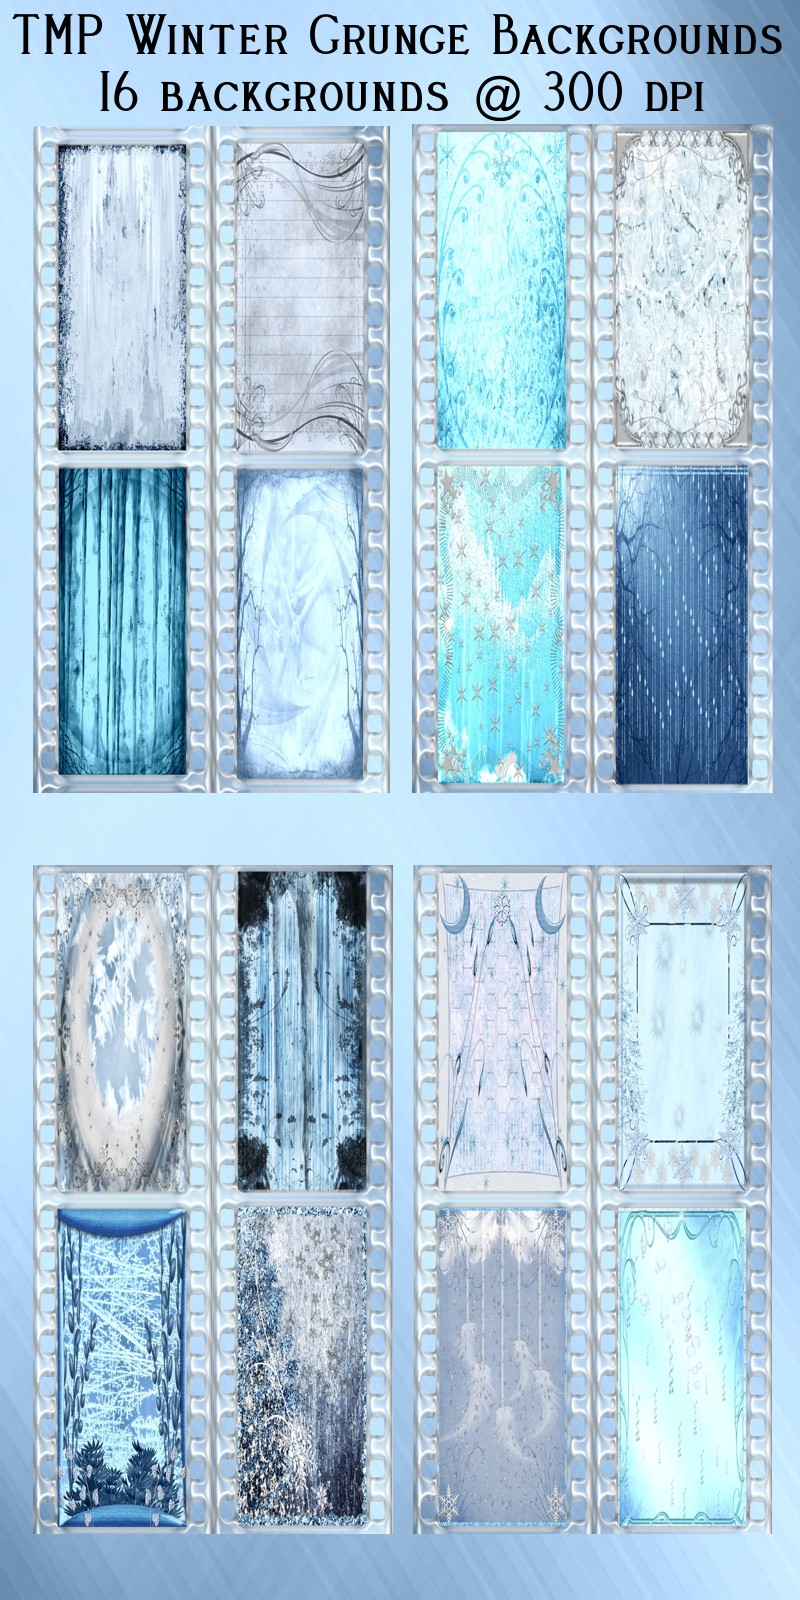 TMP Winter Grunge Backgrounds